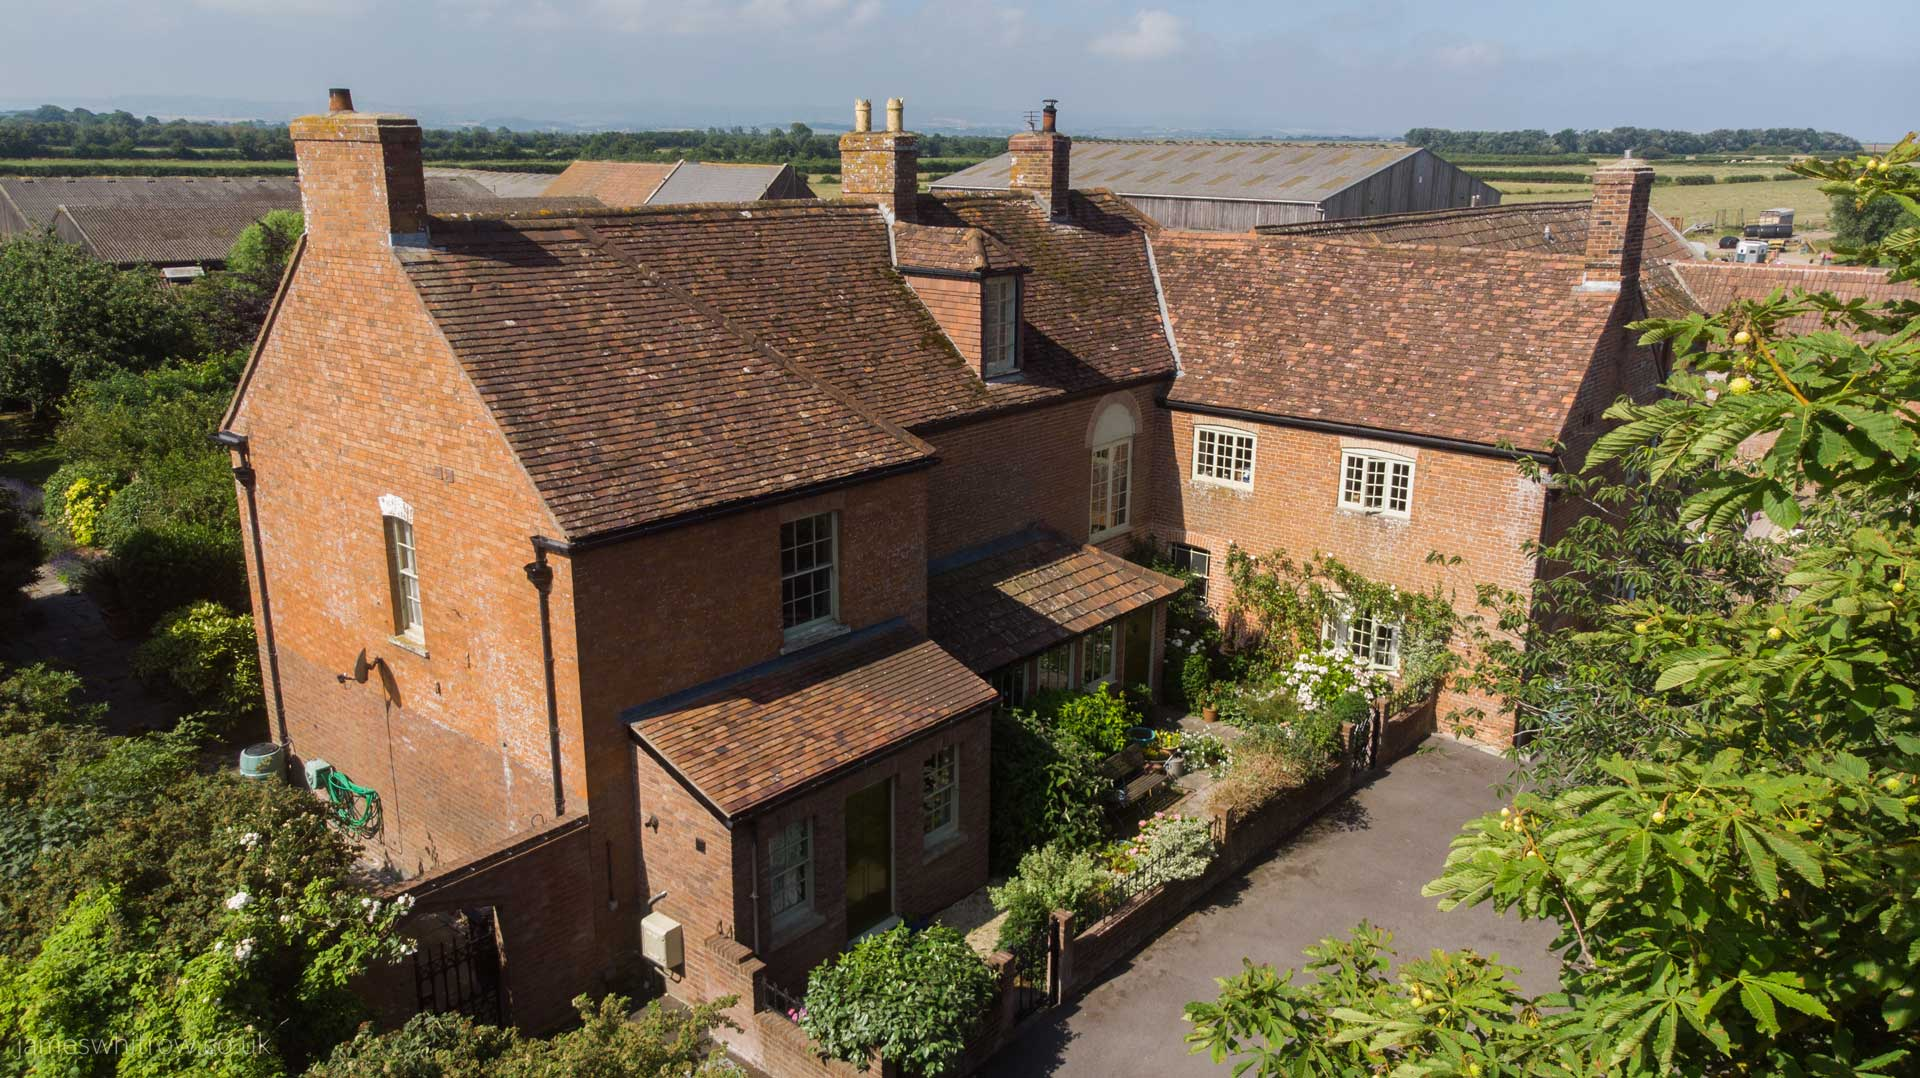 Aerial Drone Photography for CJ Hole's Property 'Alstone Court'